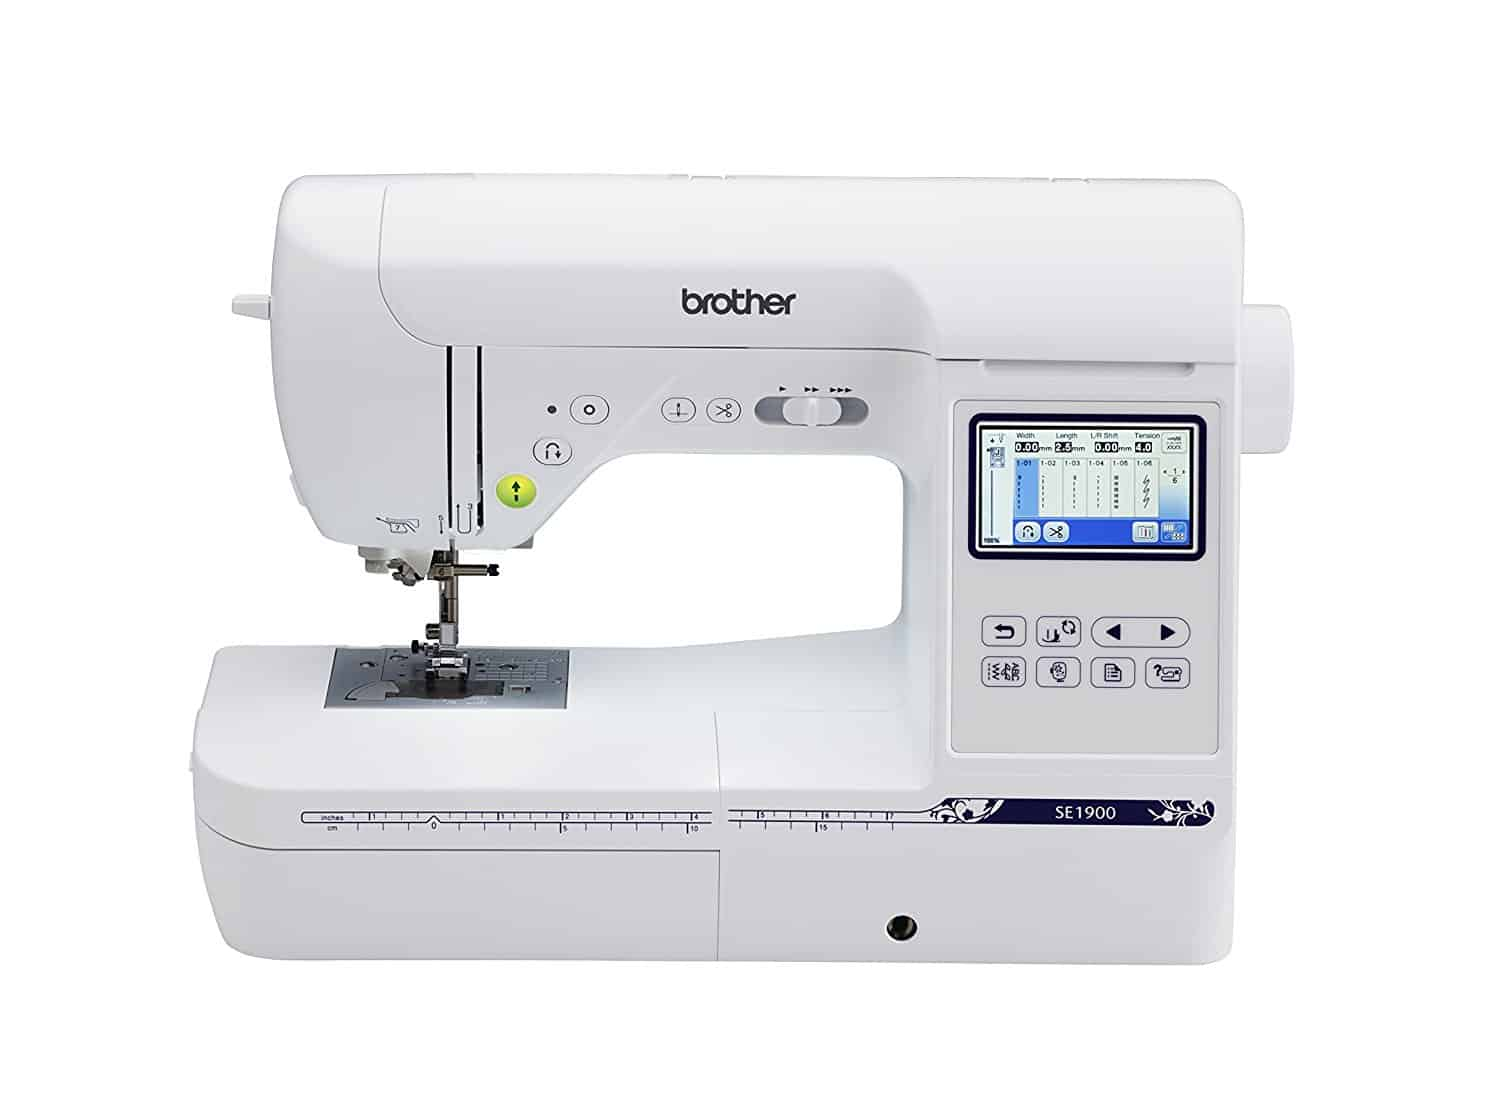 Brother SE1900, Combination Sewing and Embroidery Machine ...